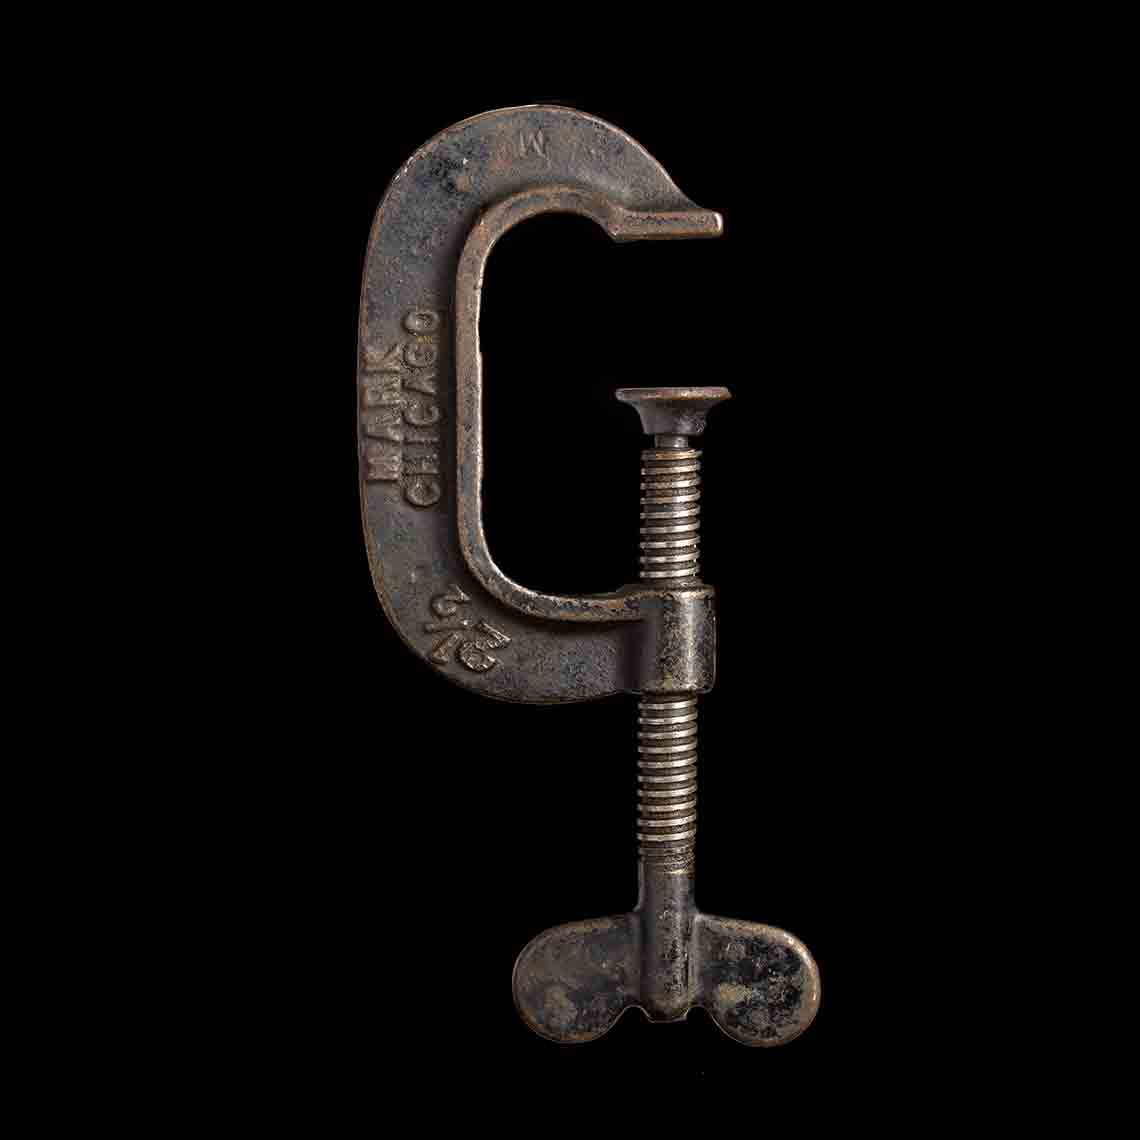 HFREEMAN_Alphabet_tools_G_RESIZED_for_WEB